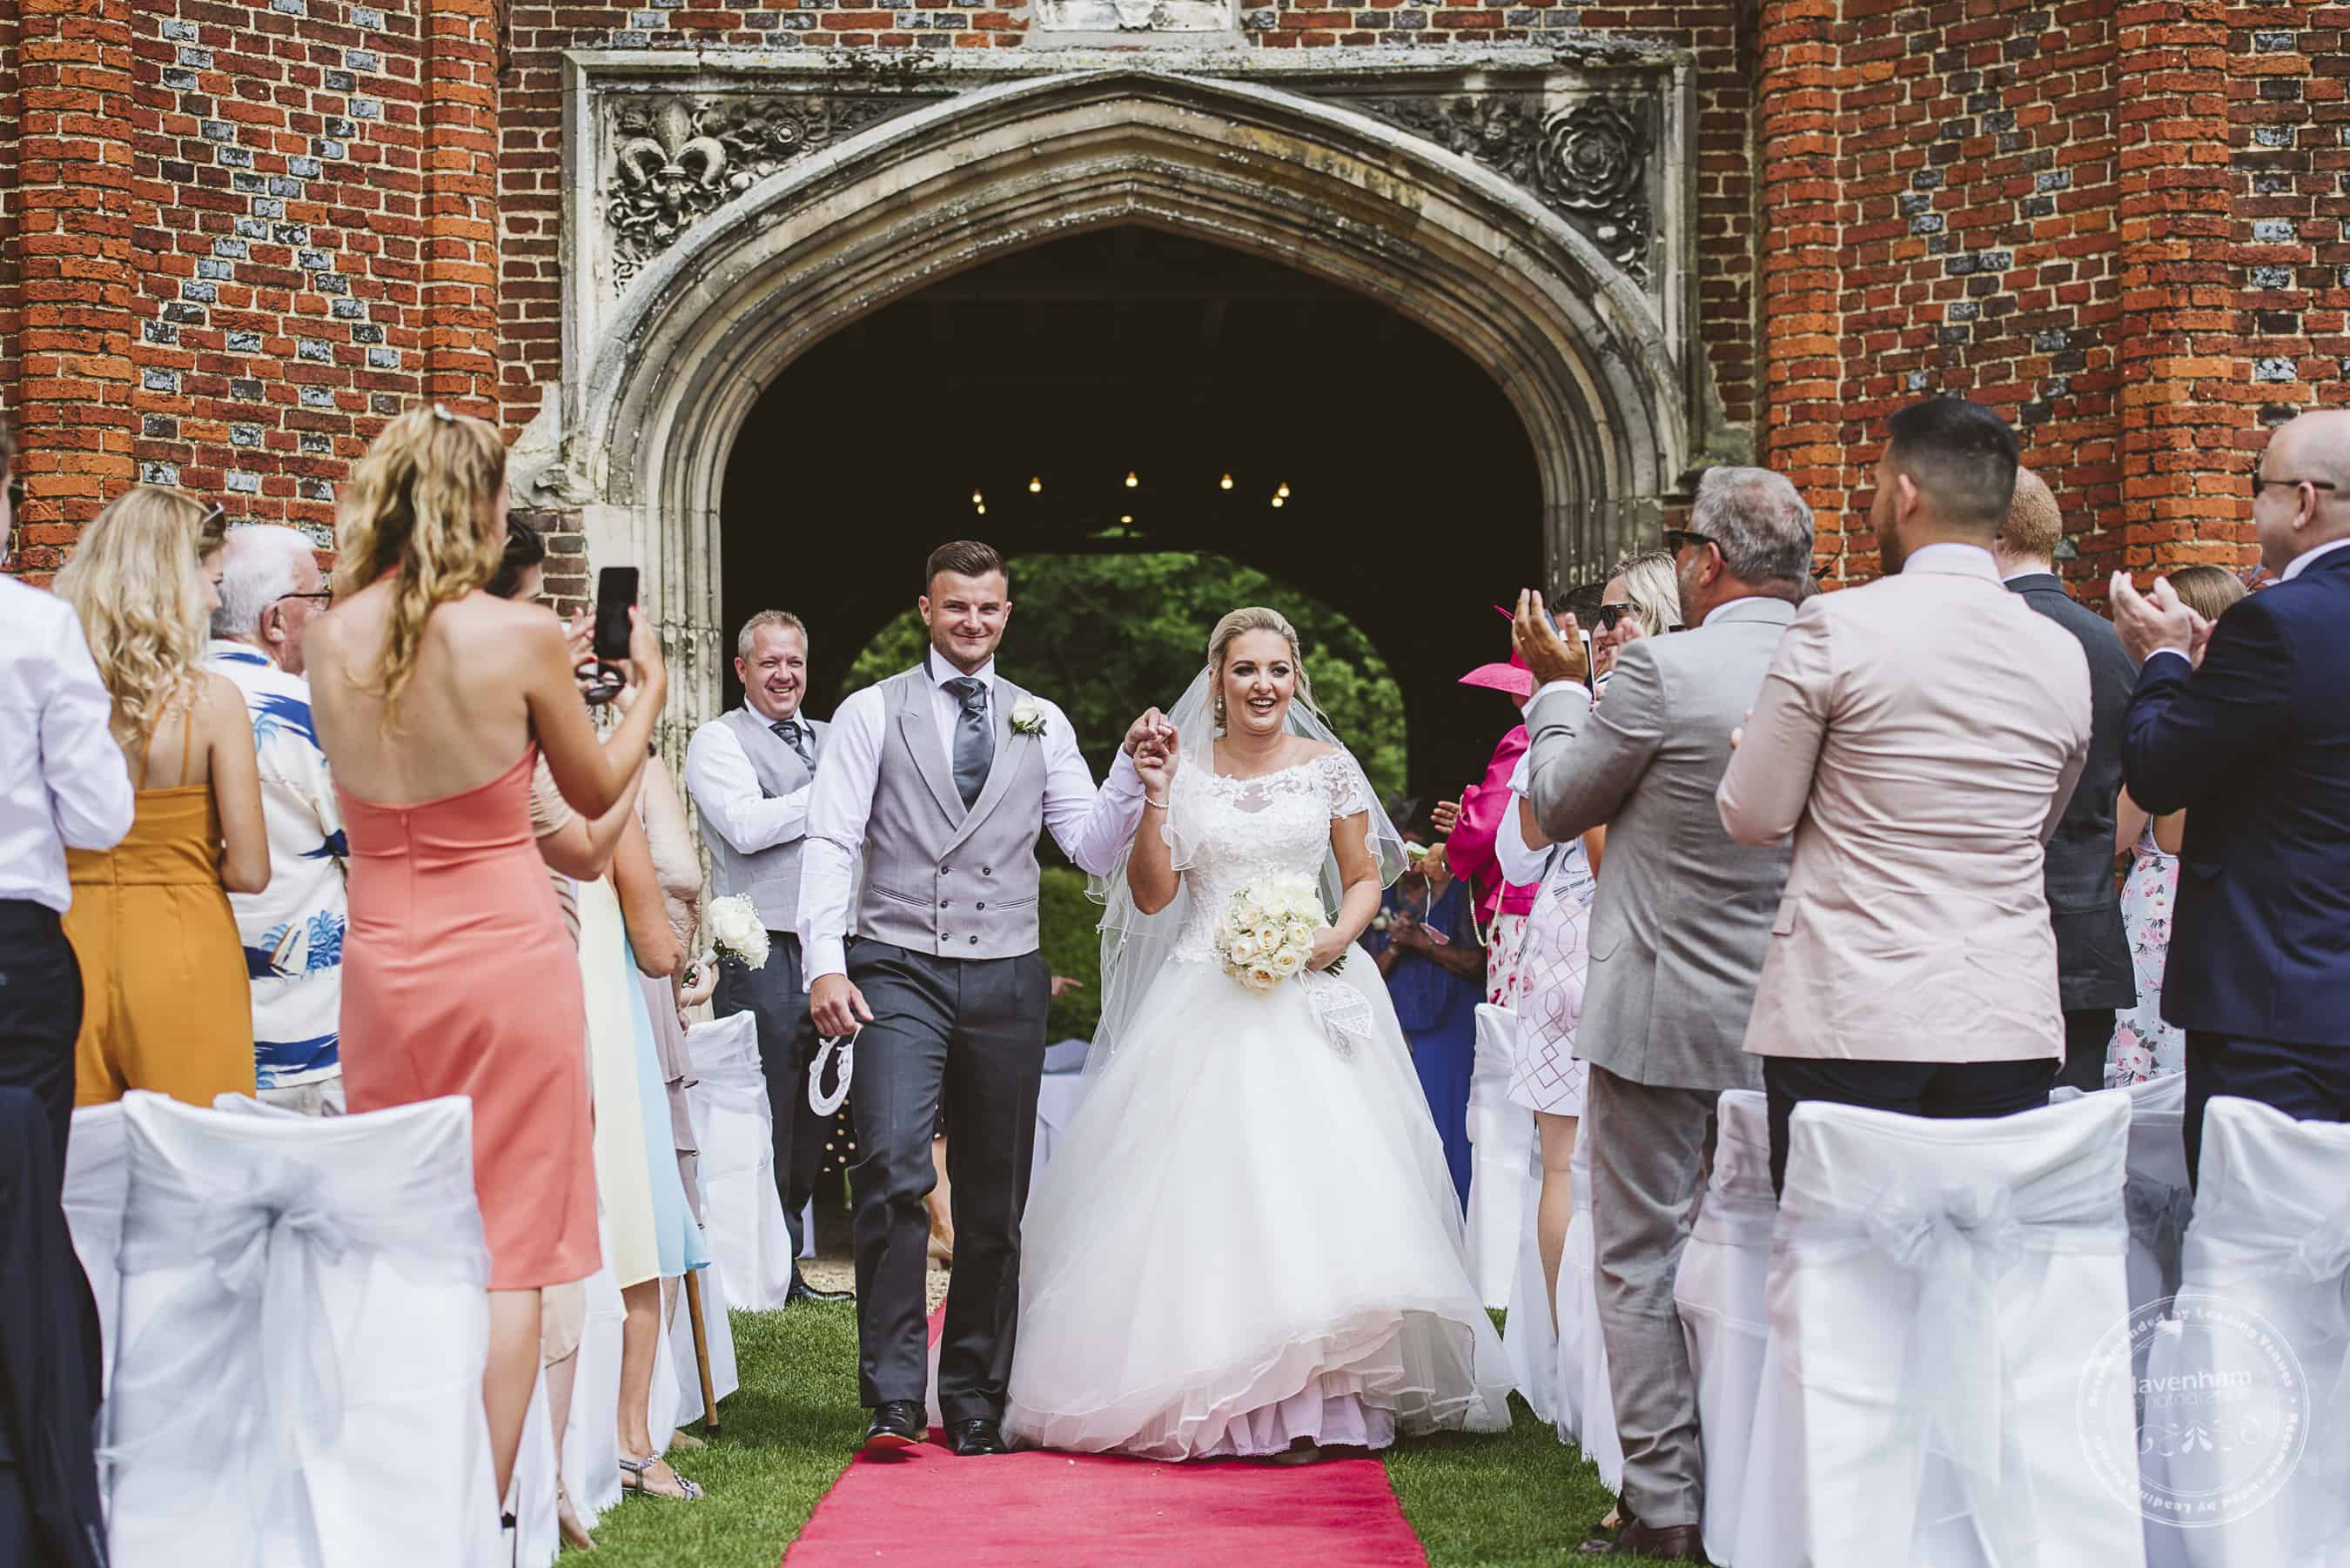 030618 Leez Priory Wedding Photography Lavenham Photographic 045